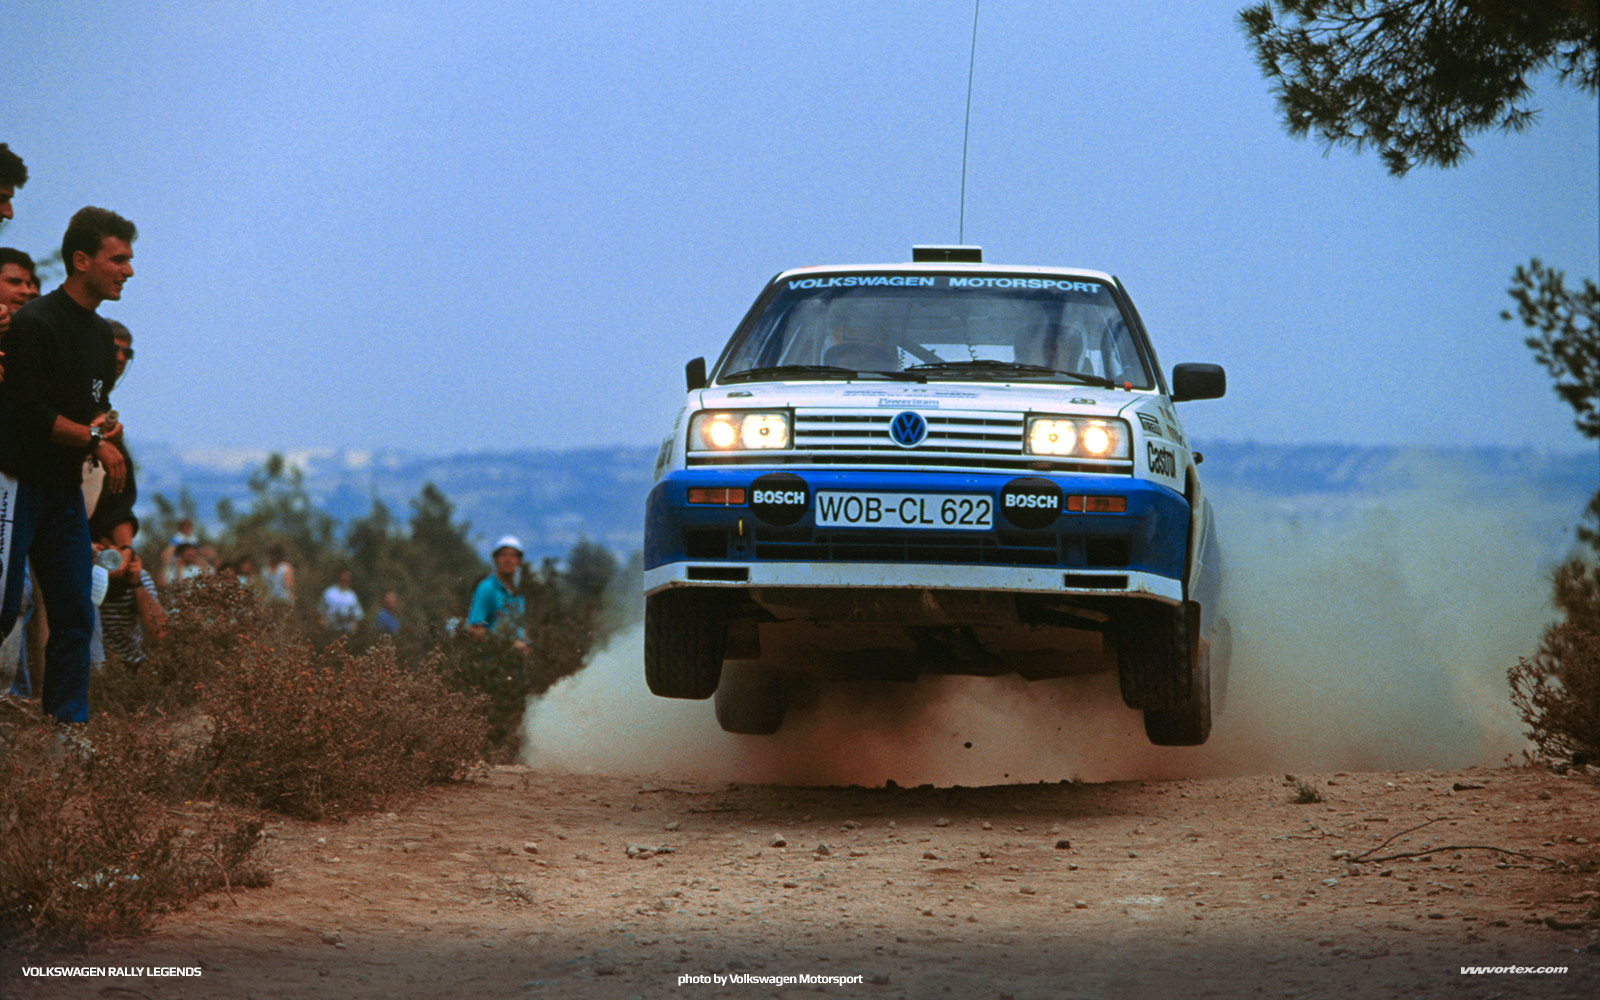 volkswagen-rally-legends-372